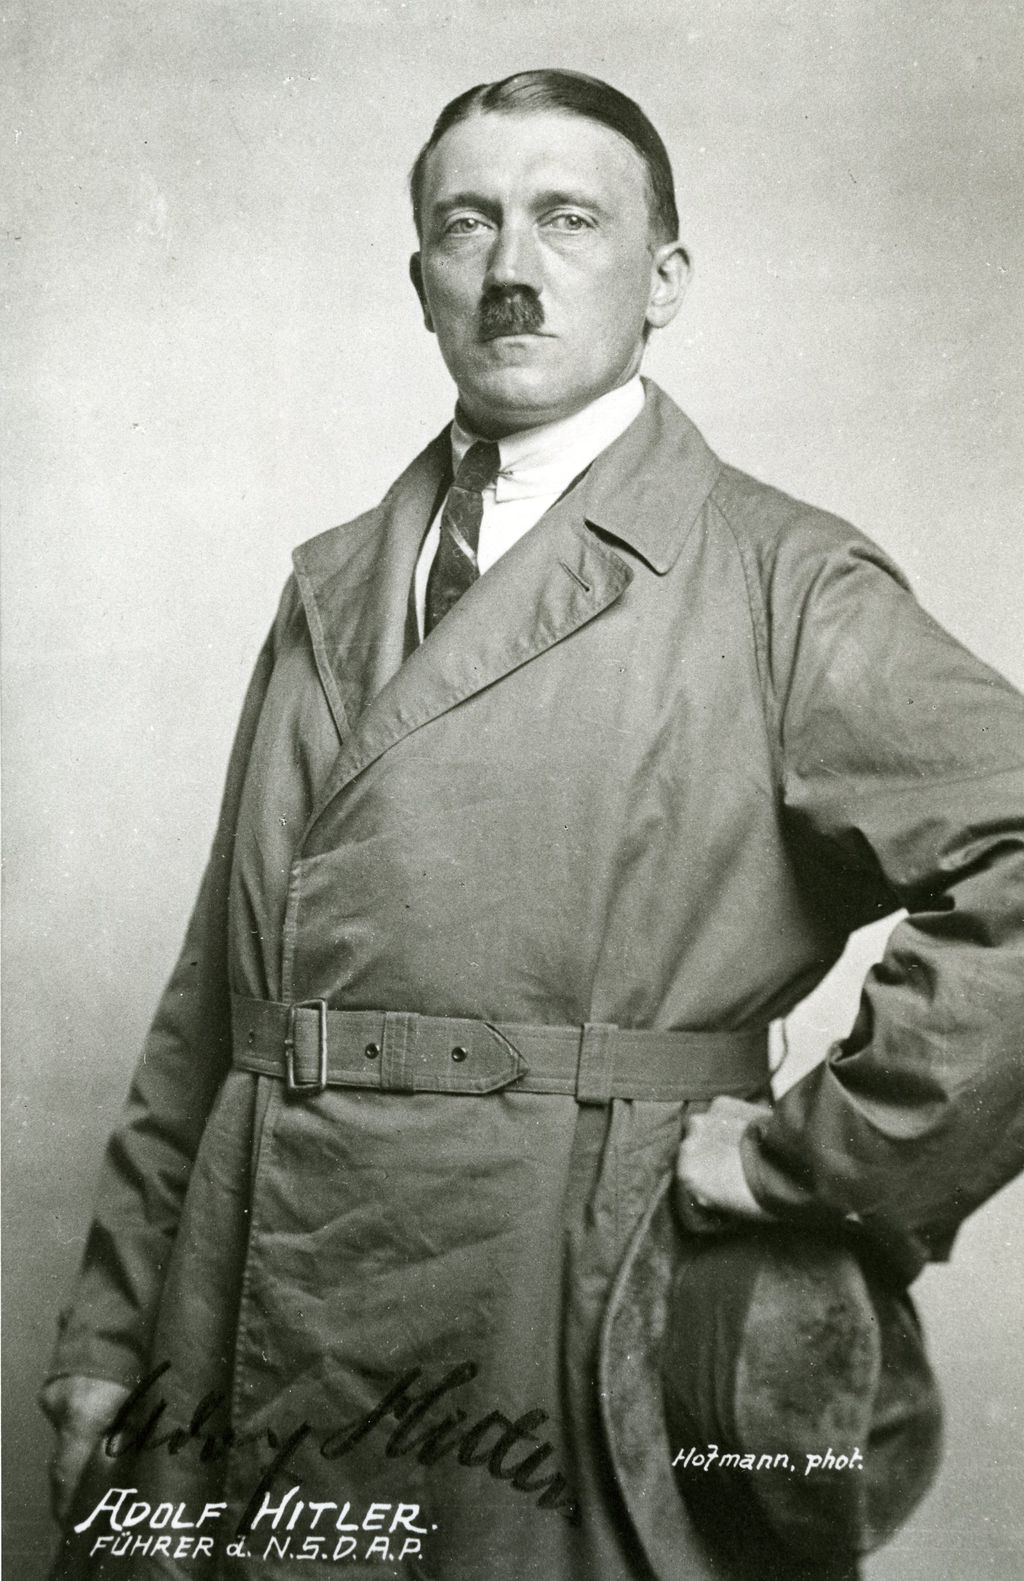 Exponat: Photo: Hitler, Adolf, 1923